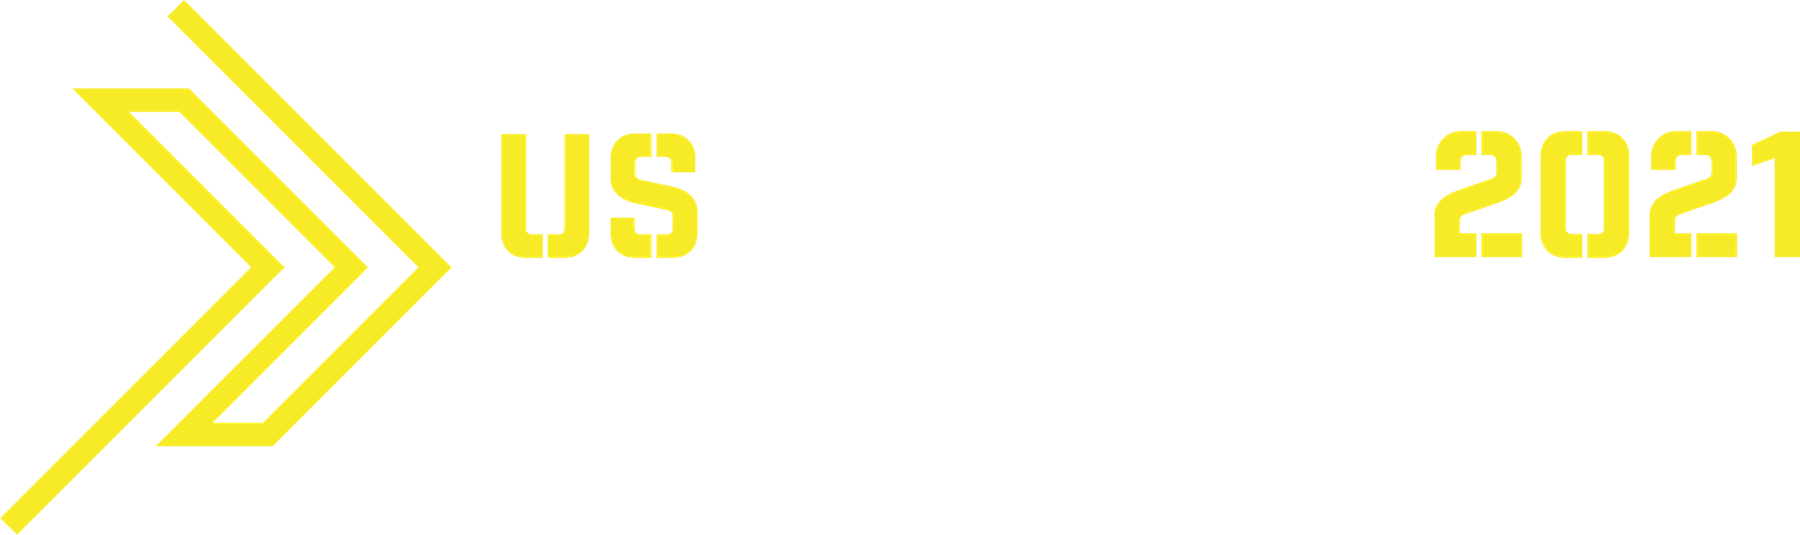 US Search Awards logo